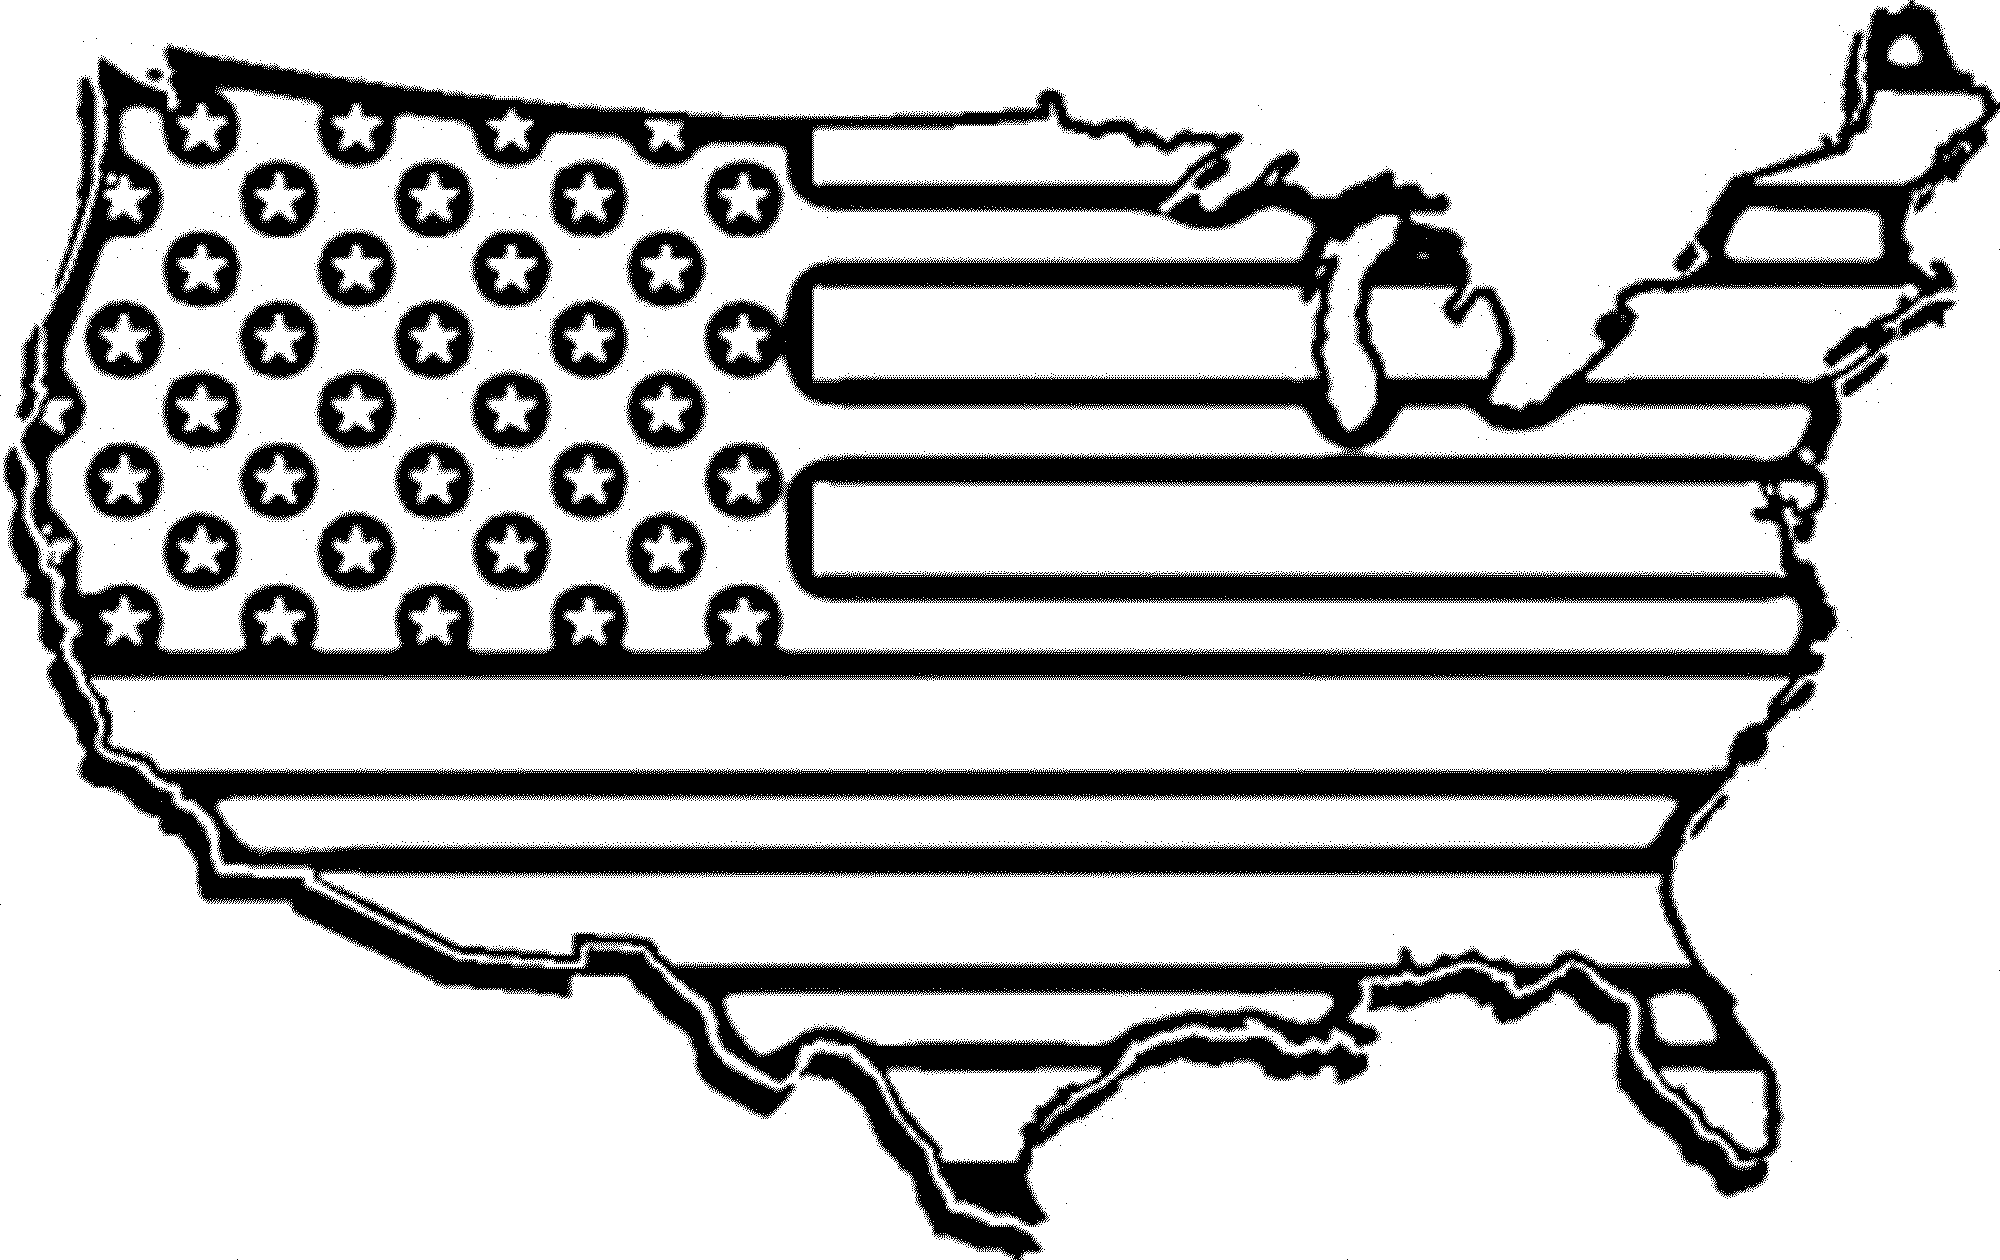 Free us map flag clipart image stock Us map blackline clipart - ClipartFest image stock